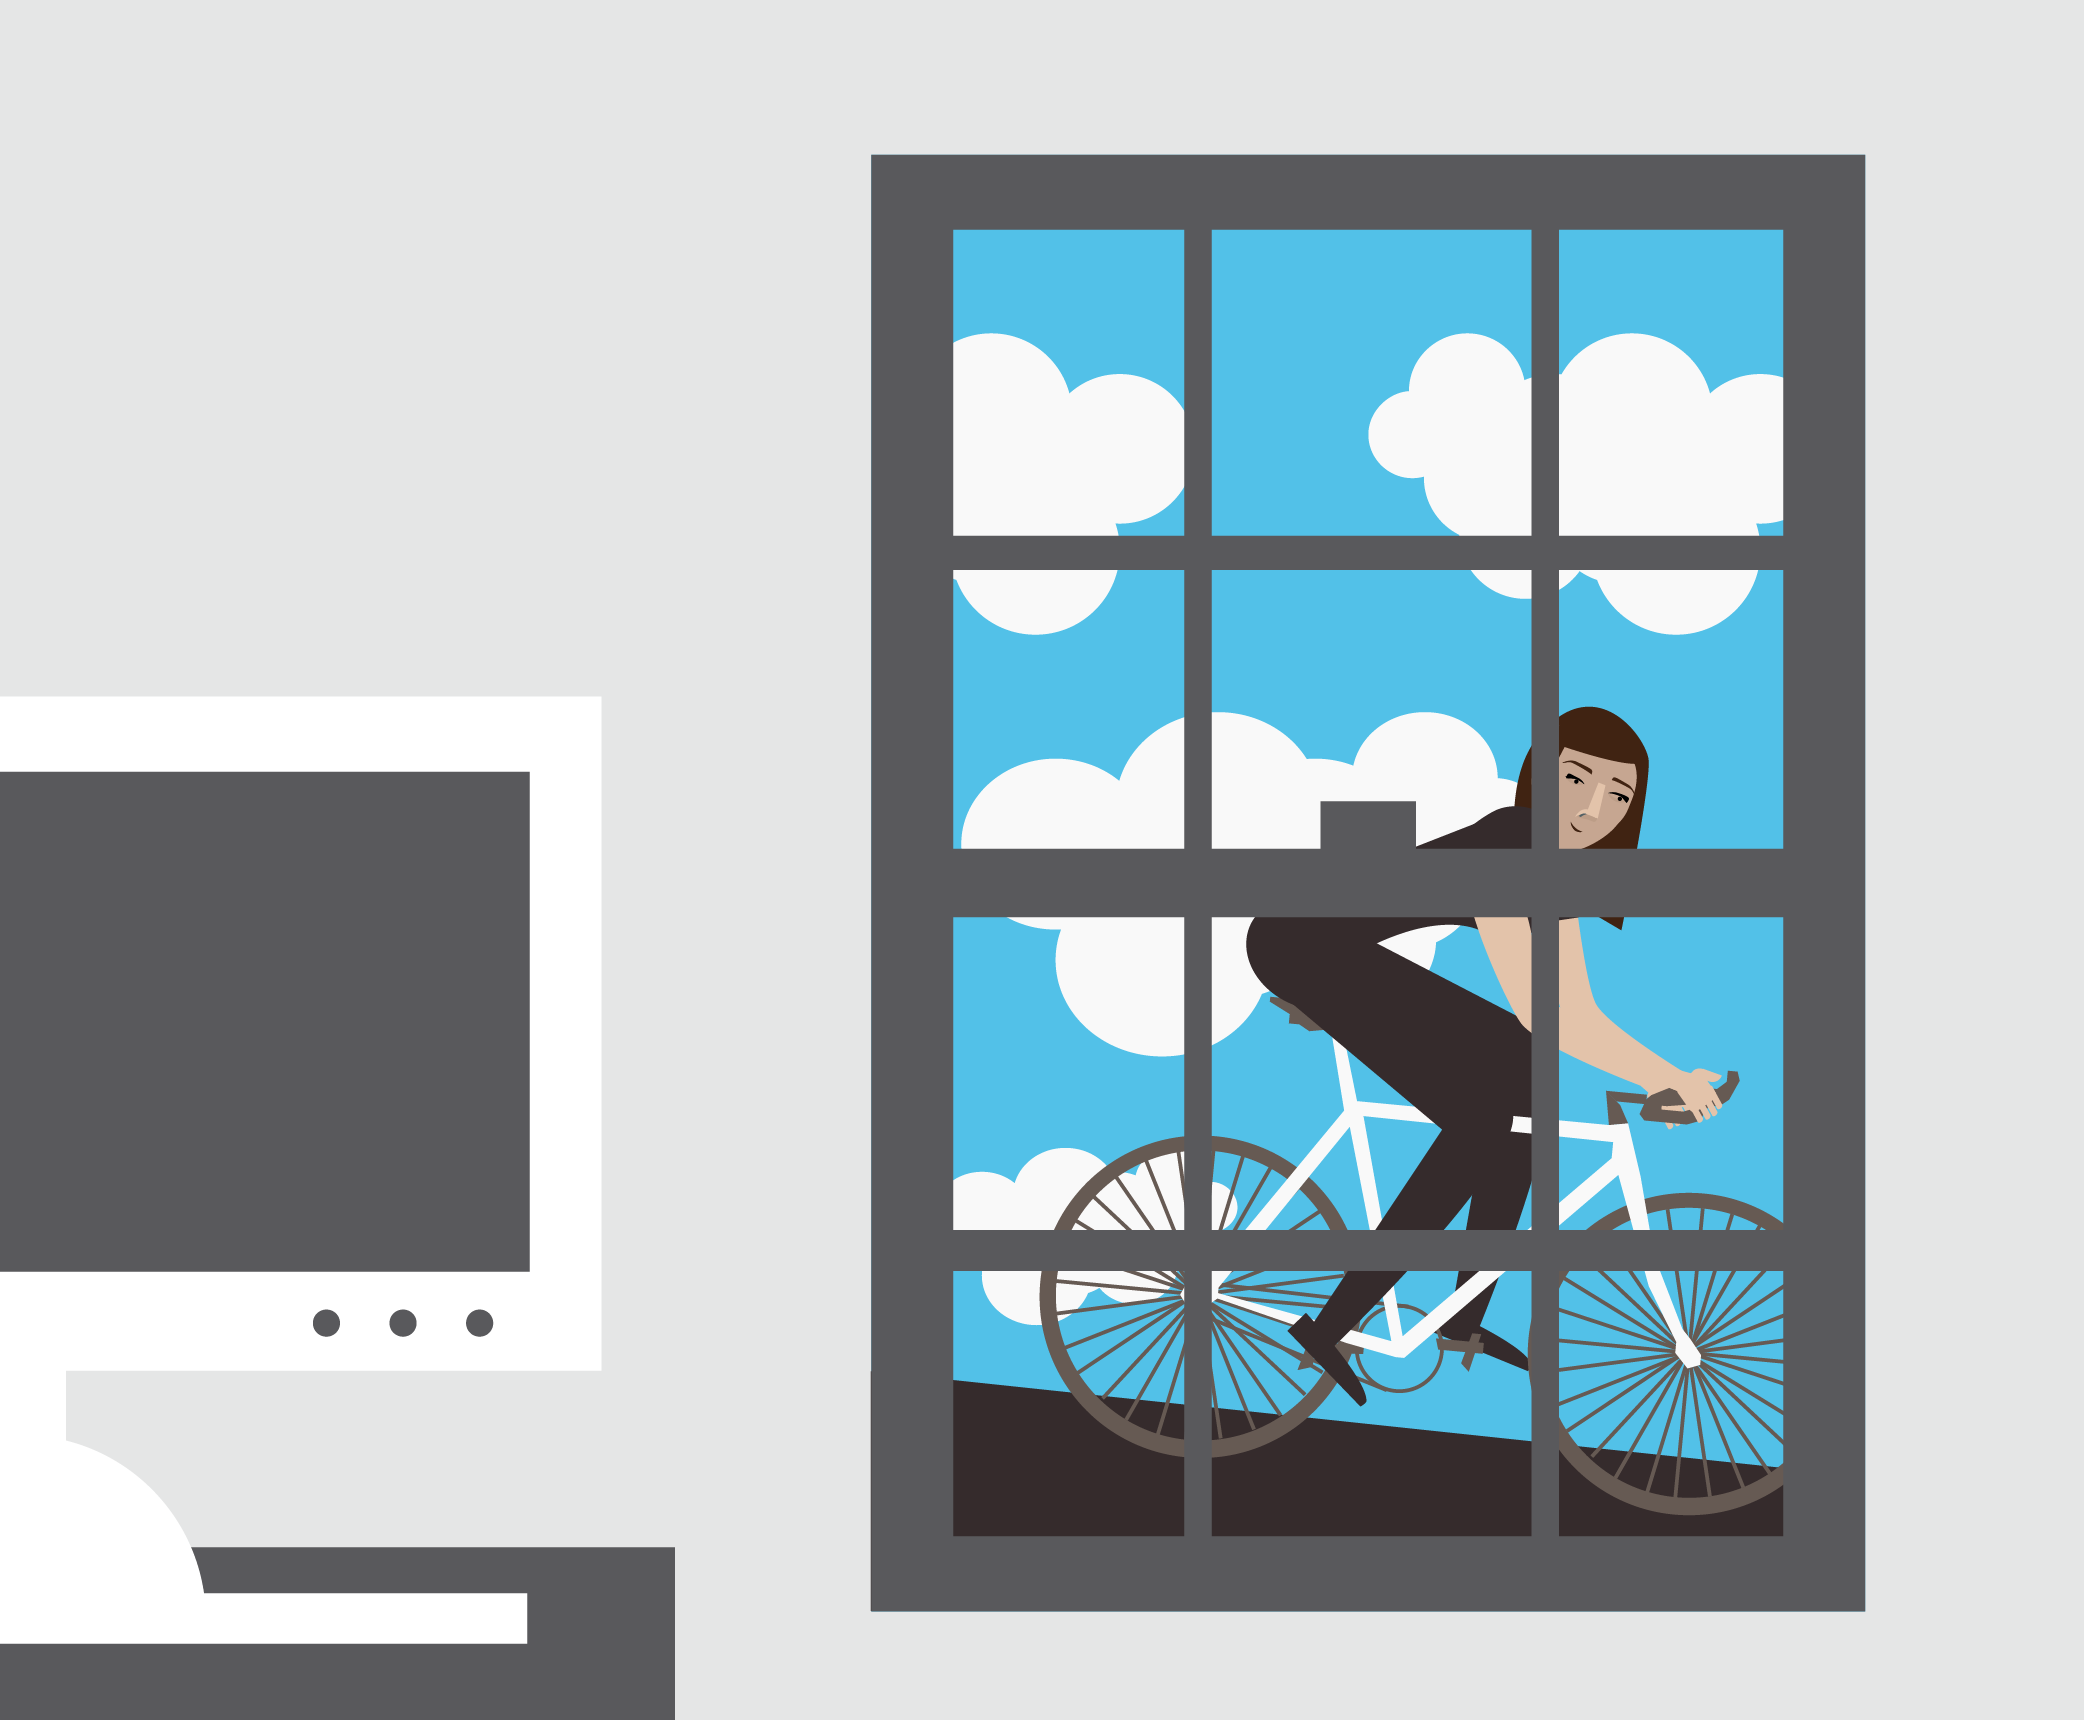 Illustration of a blogger taking a break by riding her bike.